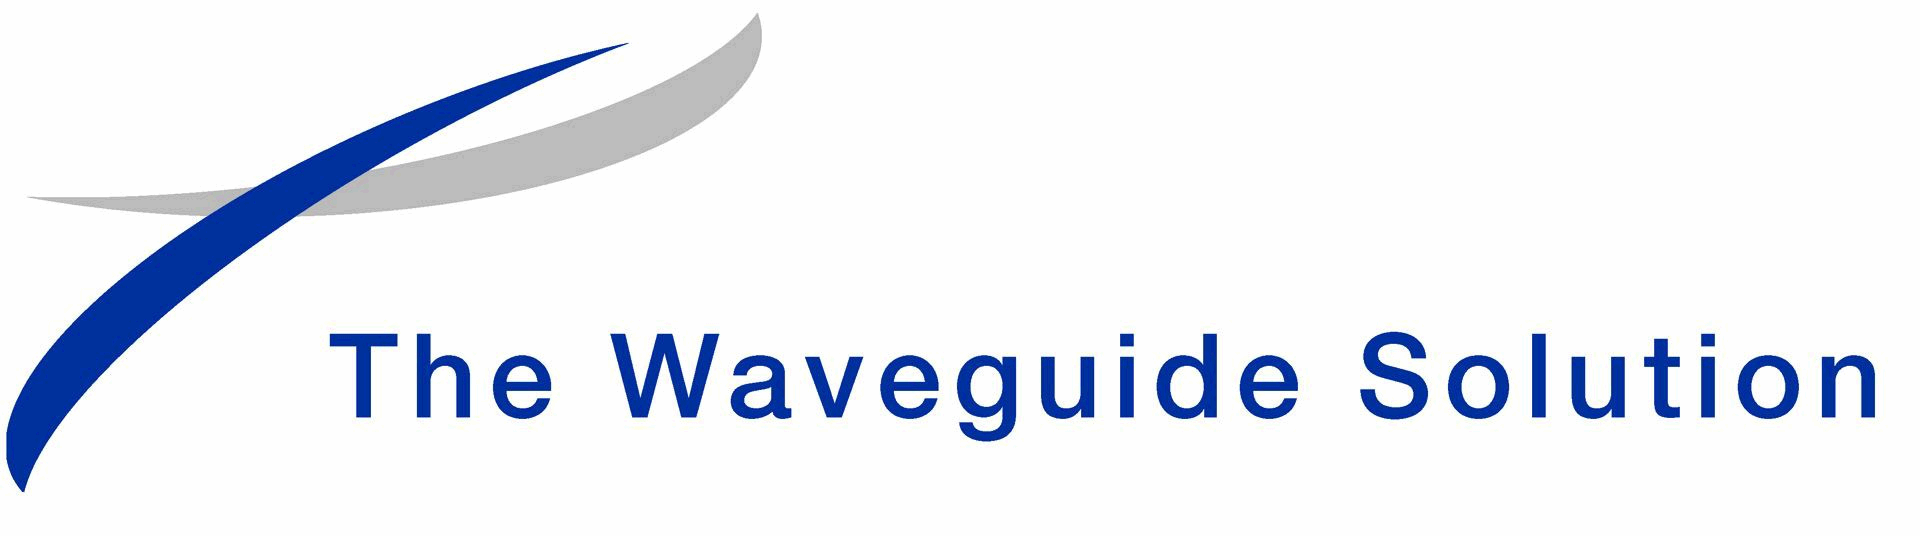 The Waveguide Solution